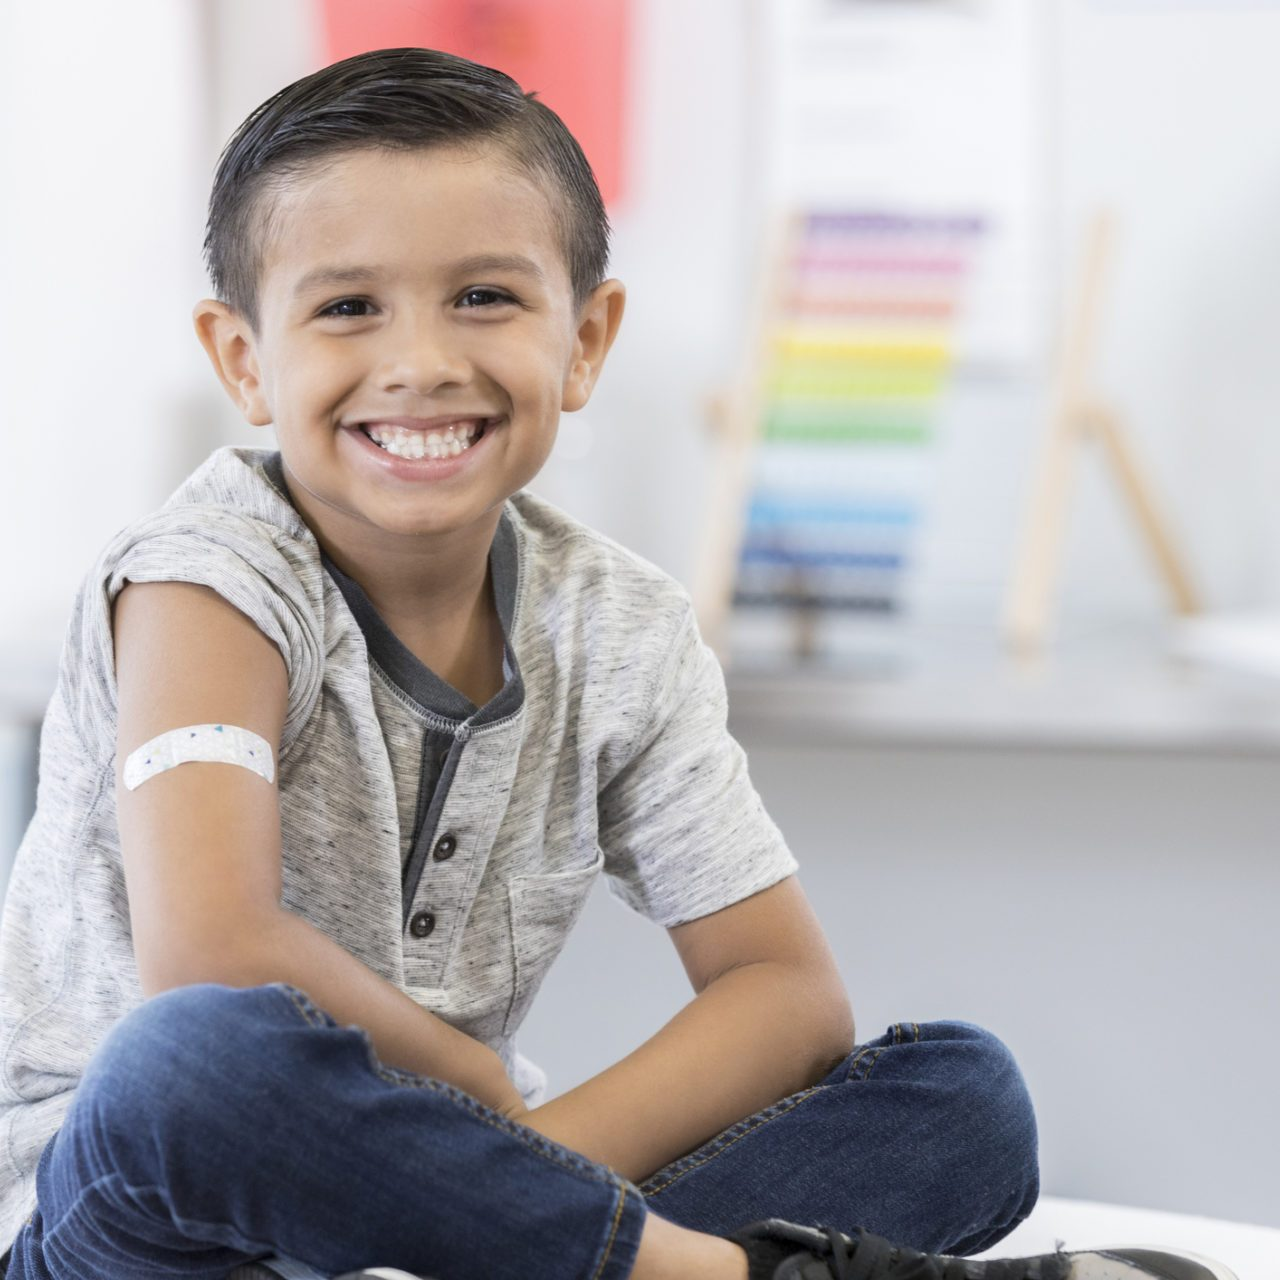 An adorable little elementary age boy sits cross legged on an exam table in his pediatrician's office.  He displays an arm bandage as he smiles for the camera.